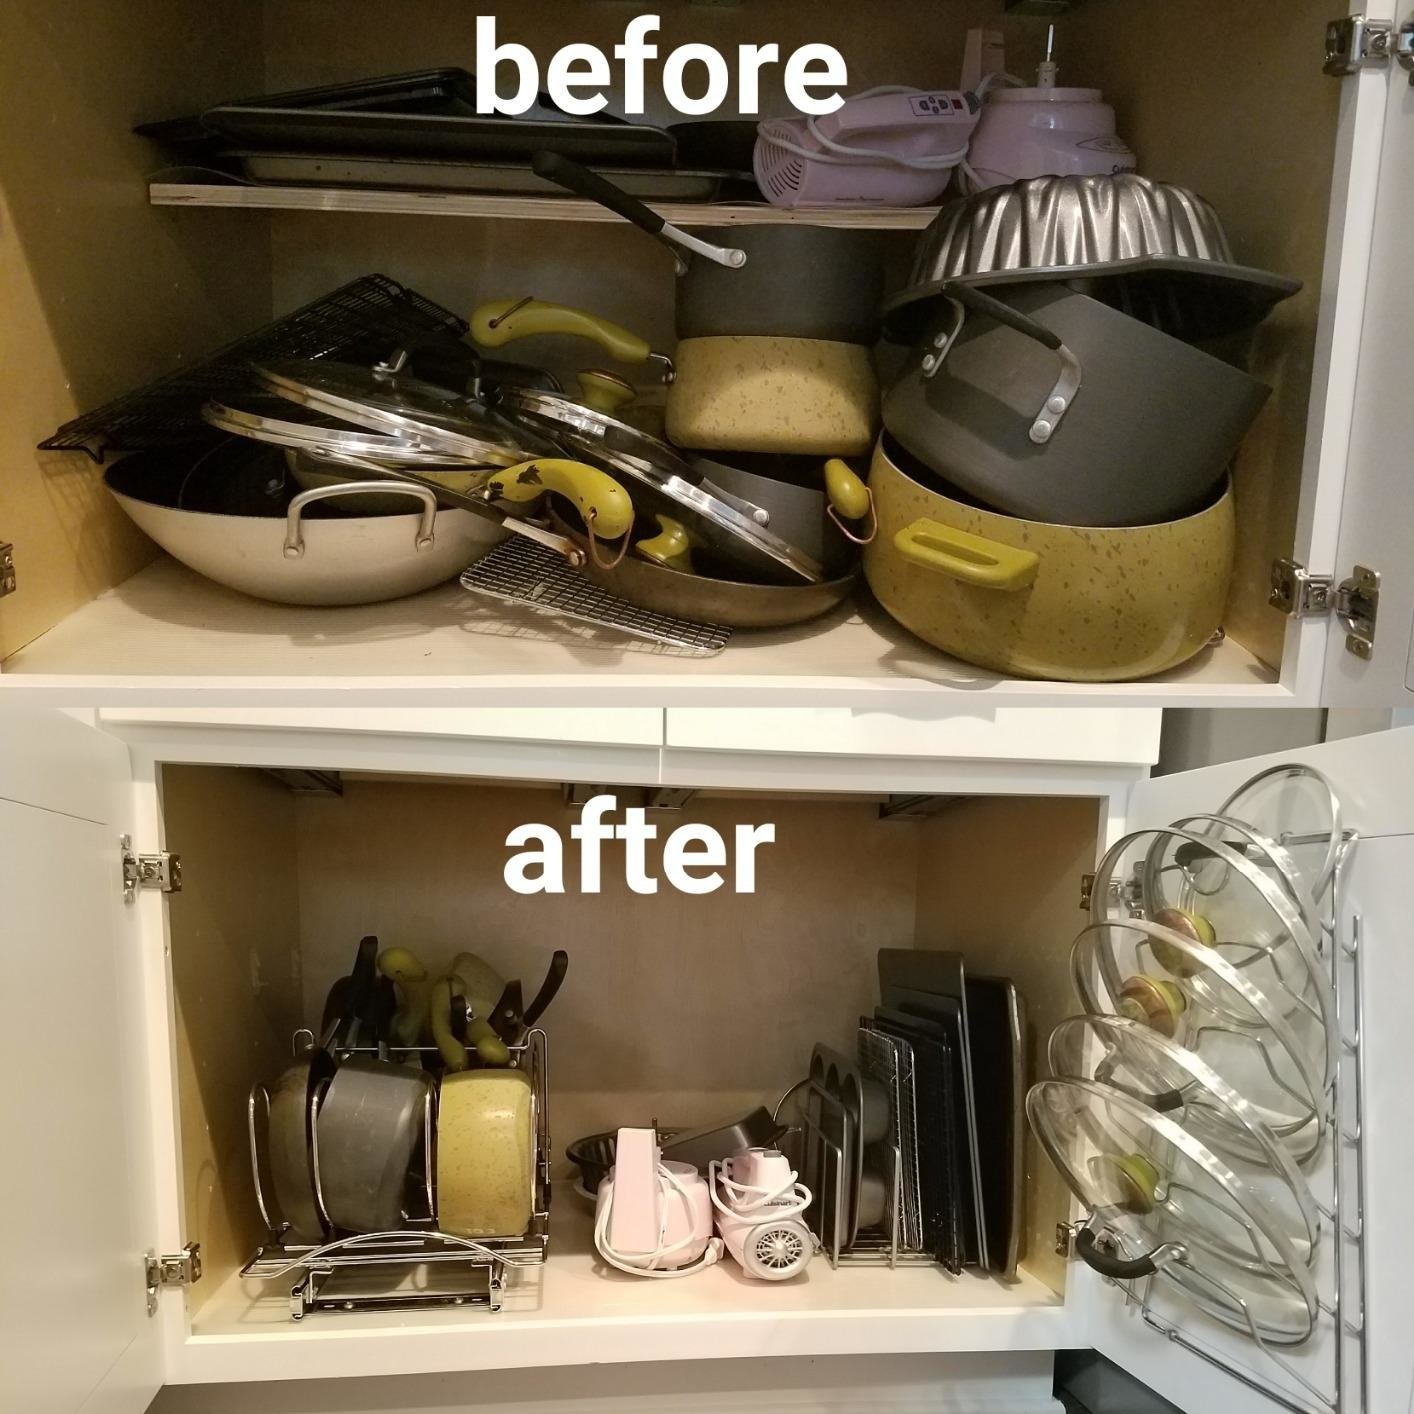 Reviewer image of cabinet cluttered in kitchen pots and pans and after with the organized shelves